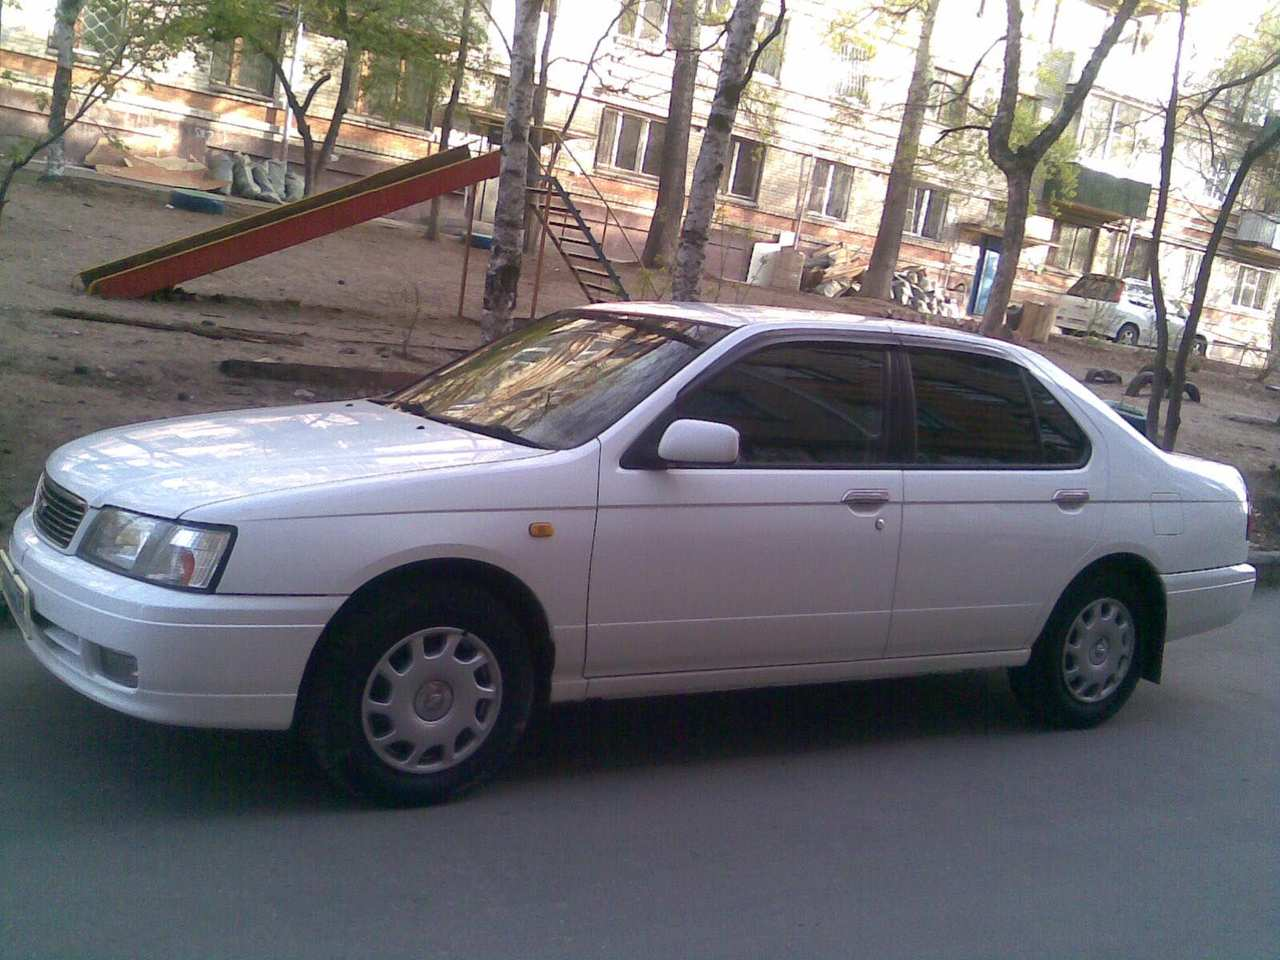 1999 Bluebird Wiring Diagram Simple Guide About Nissan Sylphy 2014